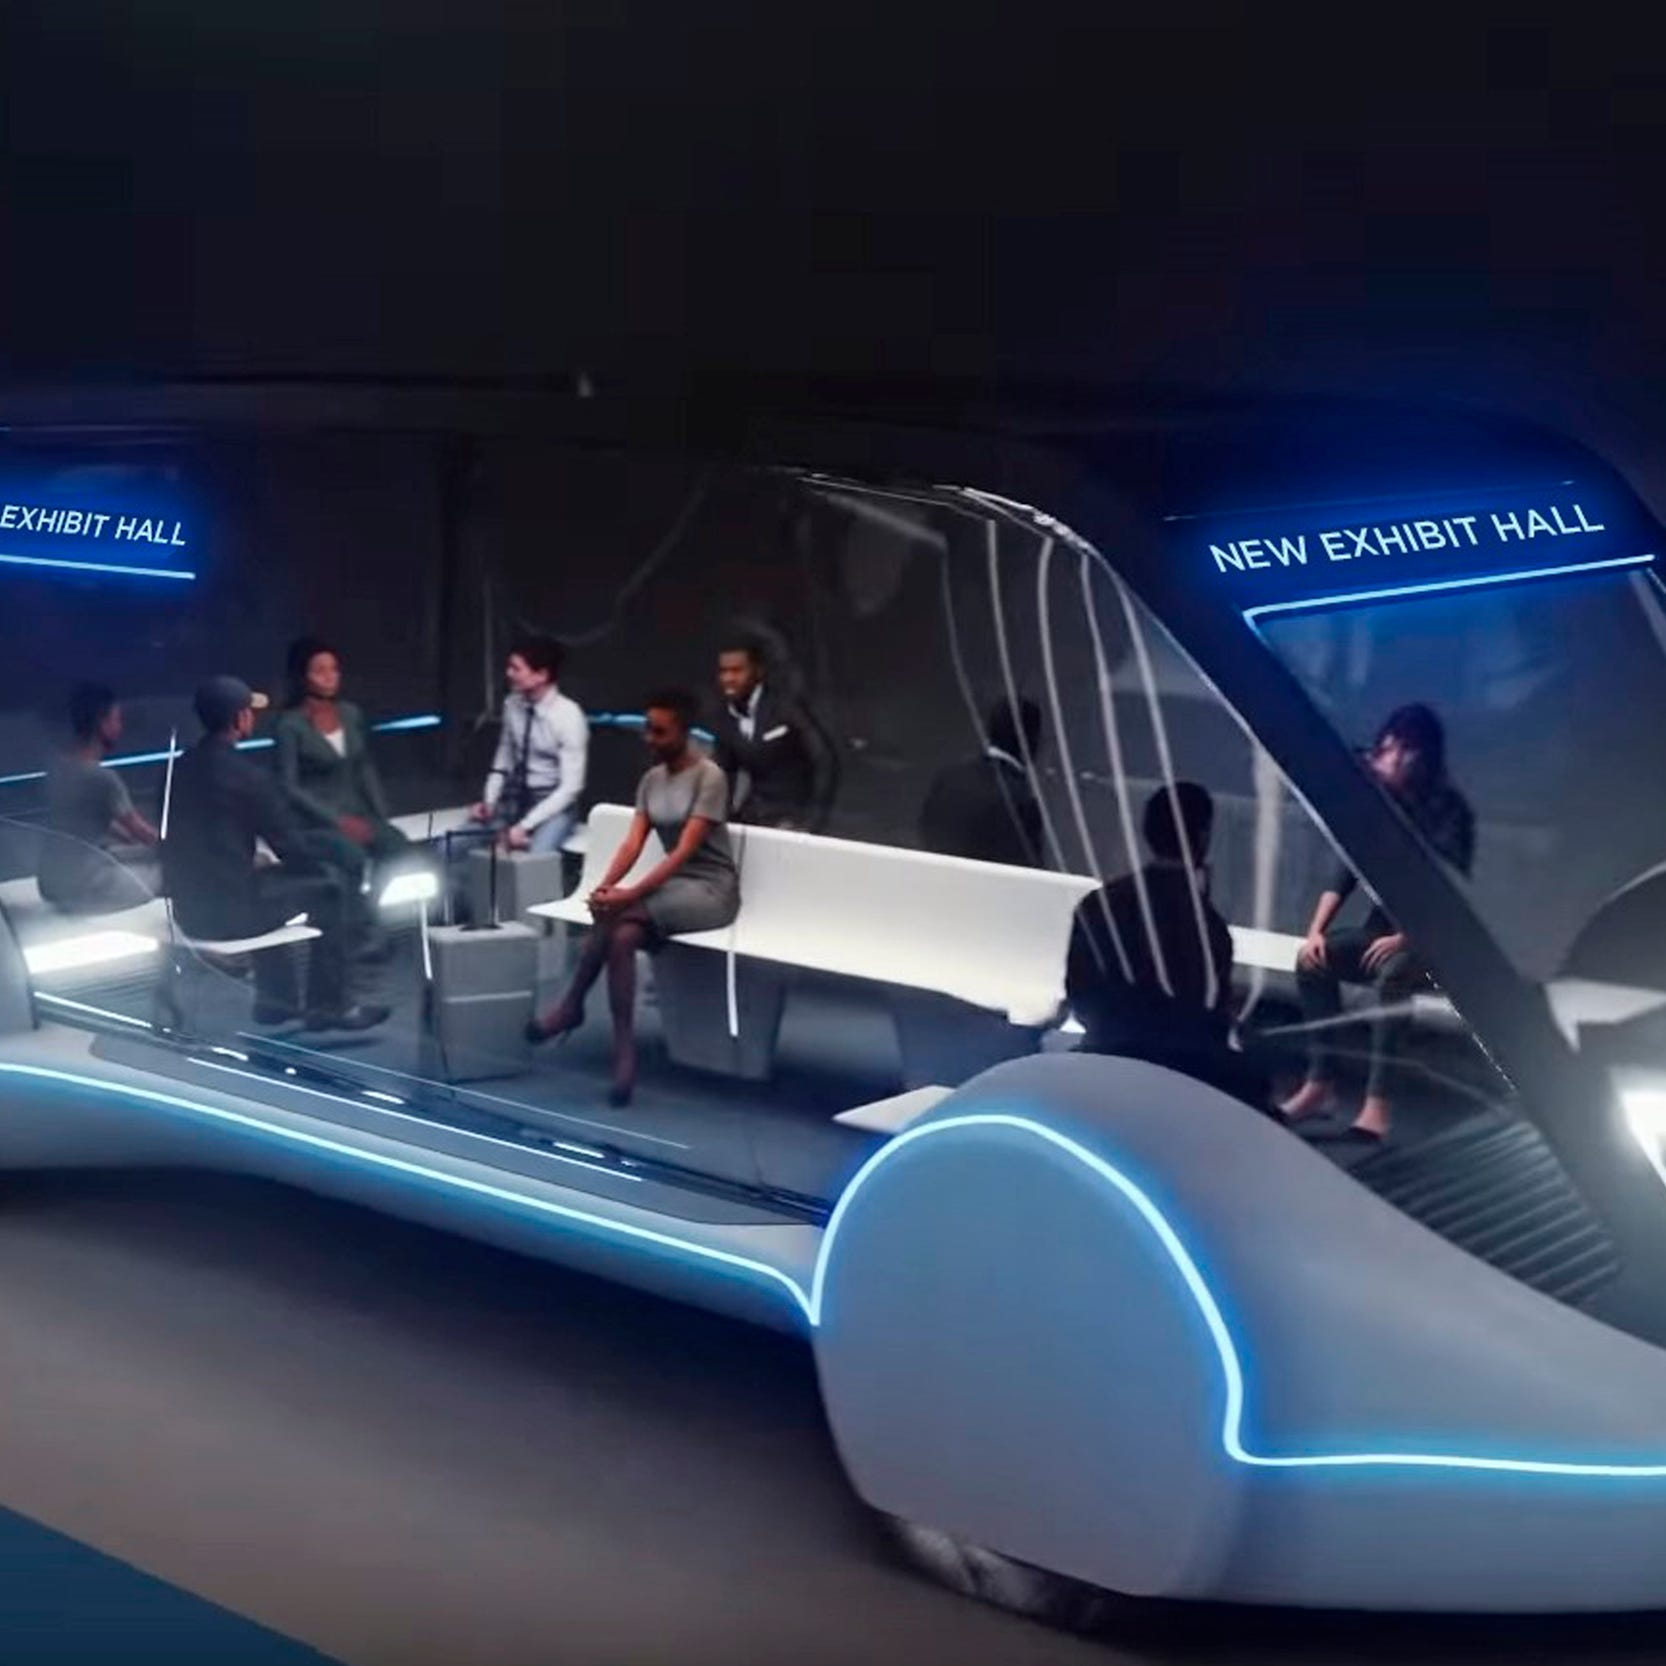 Las Vegas bets on Elon Musk for tunnel transit system